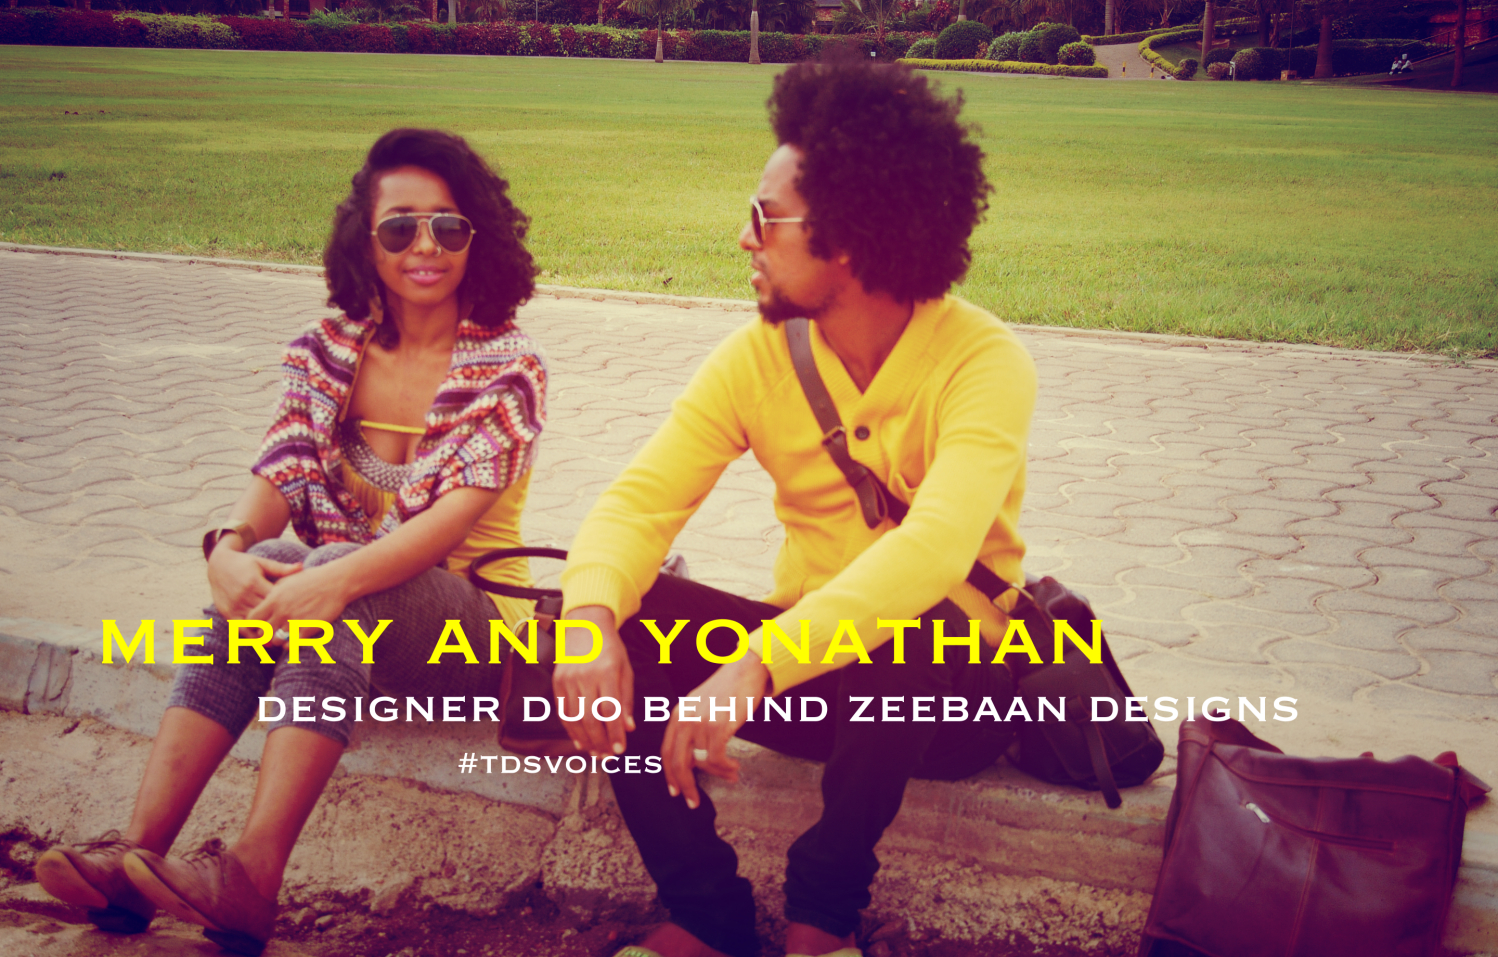 Merry and Yonathan - Designer Duo Behind Zeebaan Designs #tdsvoices | Zeeban Designs Interview with the The Designers Studio.